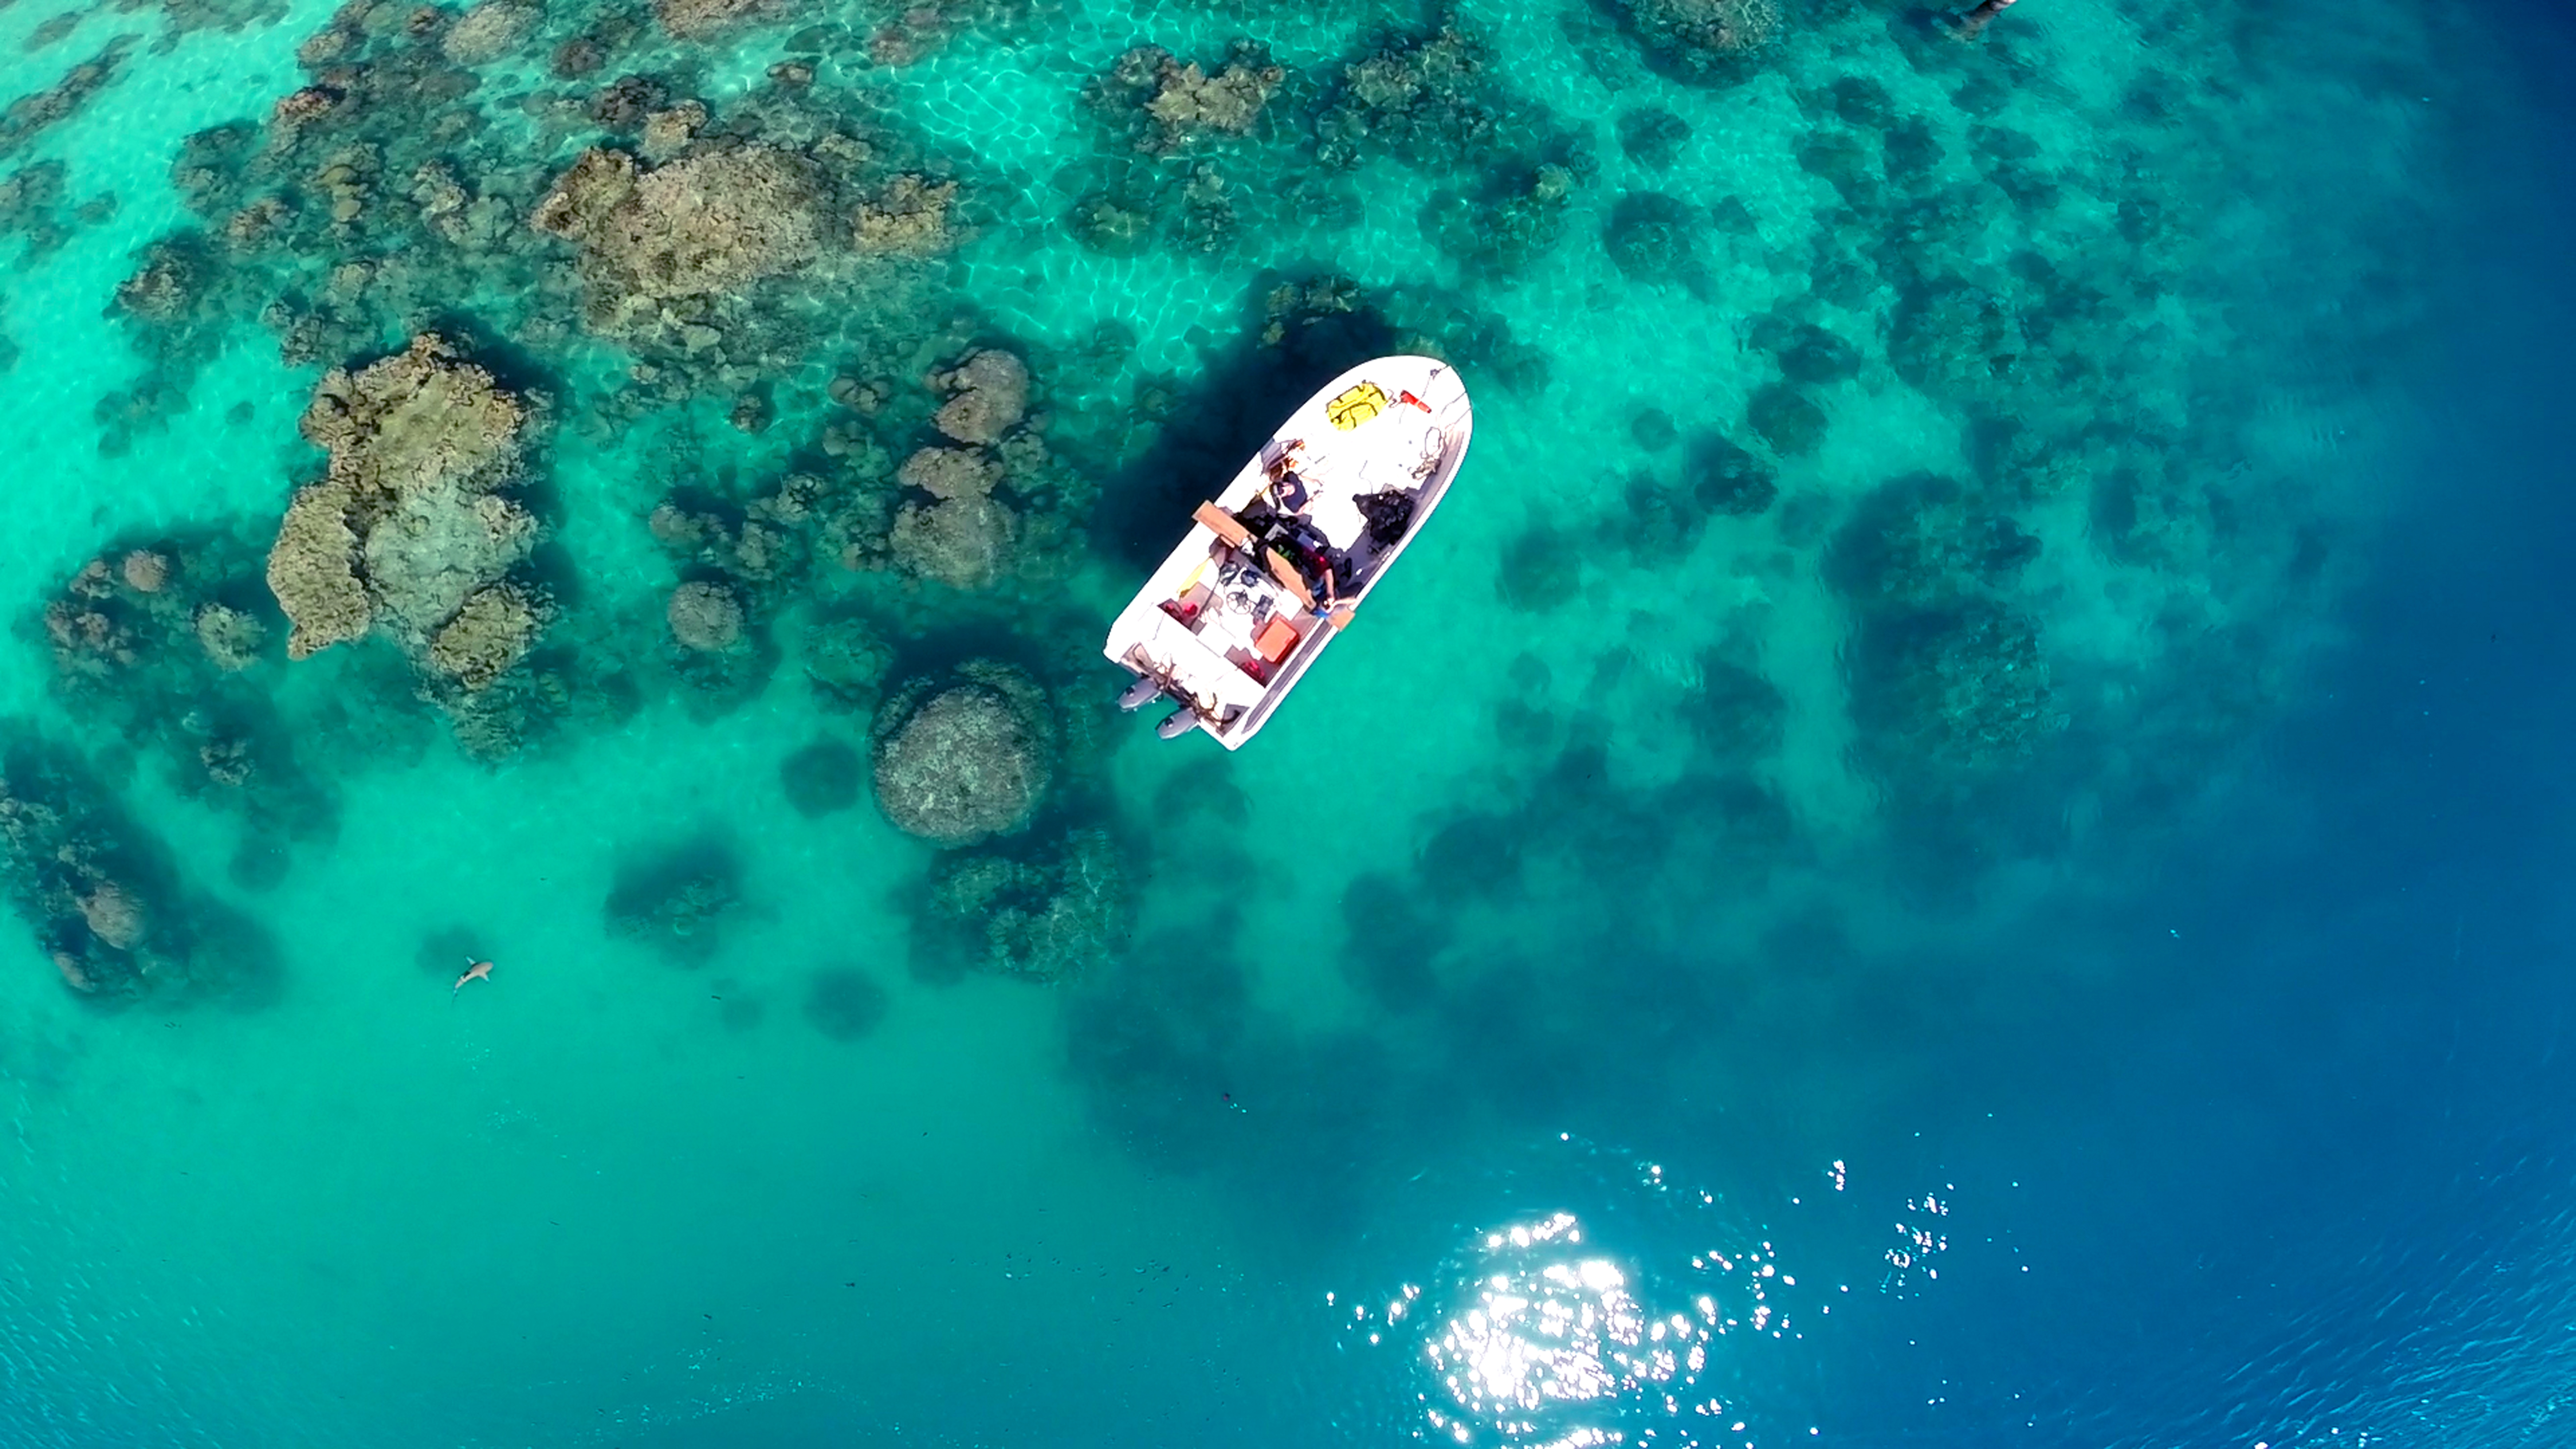 Flying over our boat, the drone recorded the presence of a blacktip reef shark (bottom left).